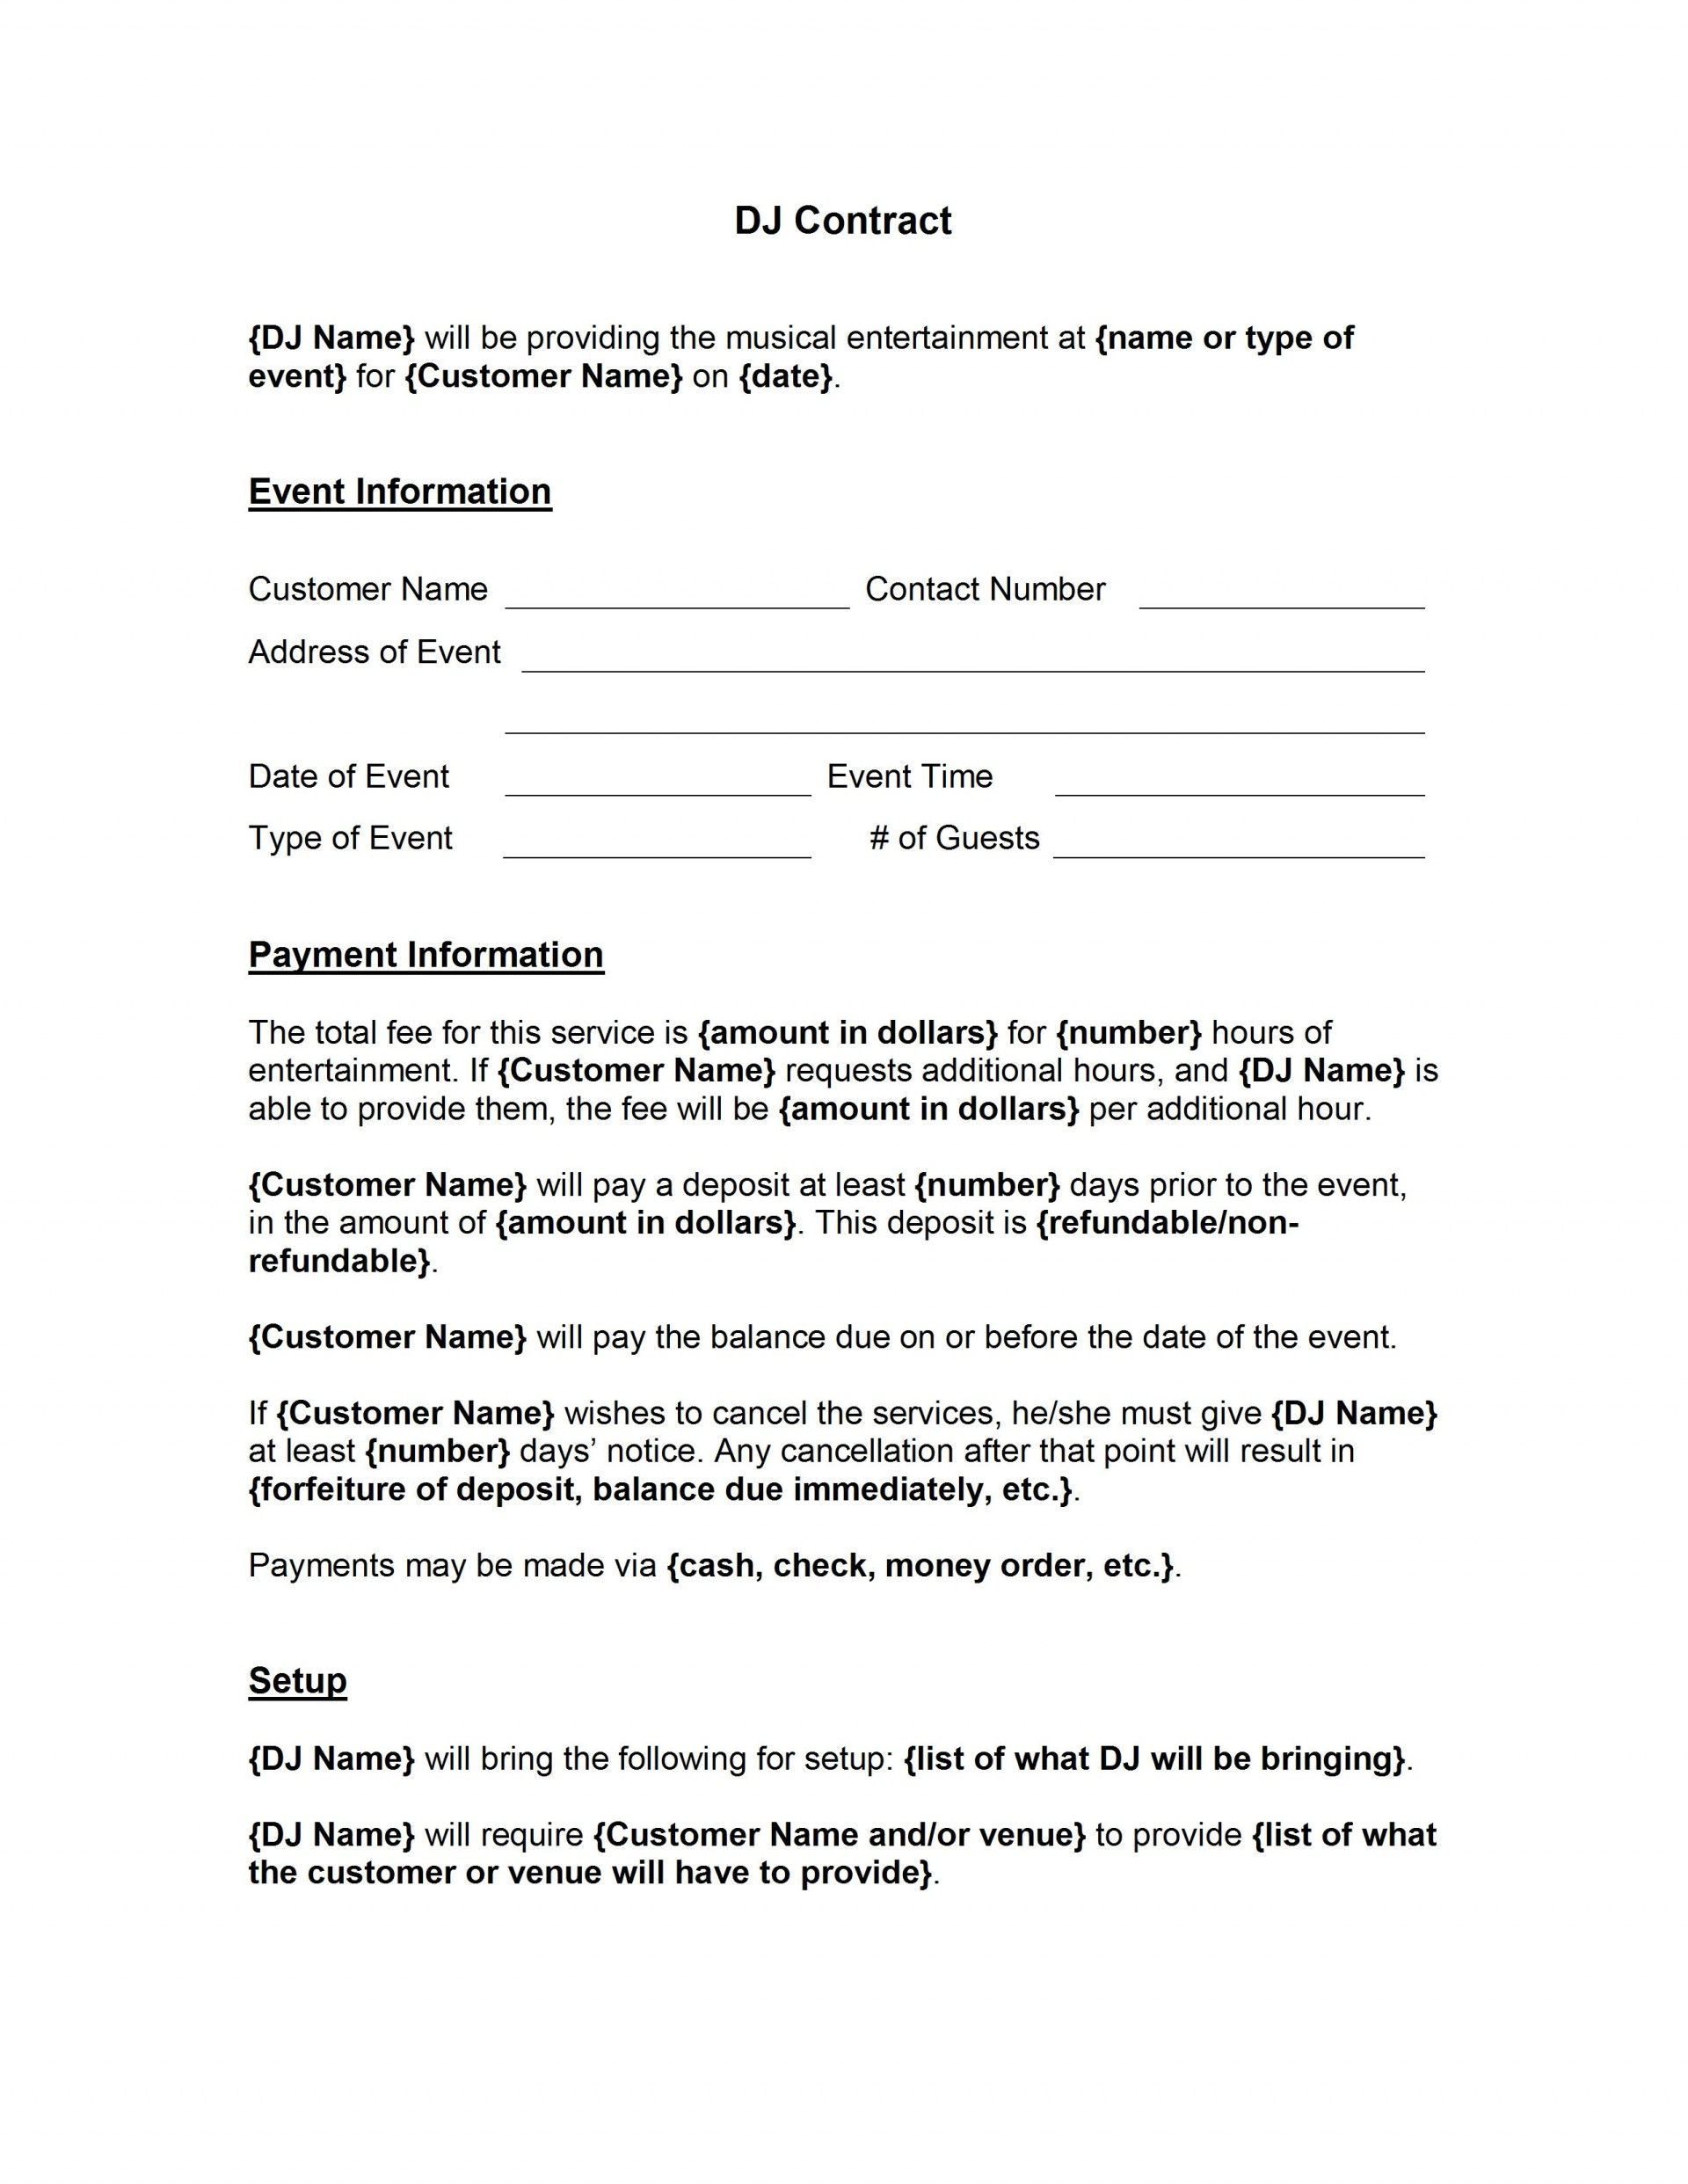 001 Awesome Disc Jockey Contract Template Highest Clarity  Disk Free1920